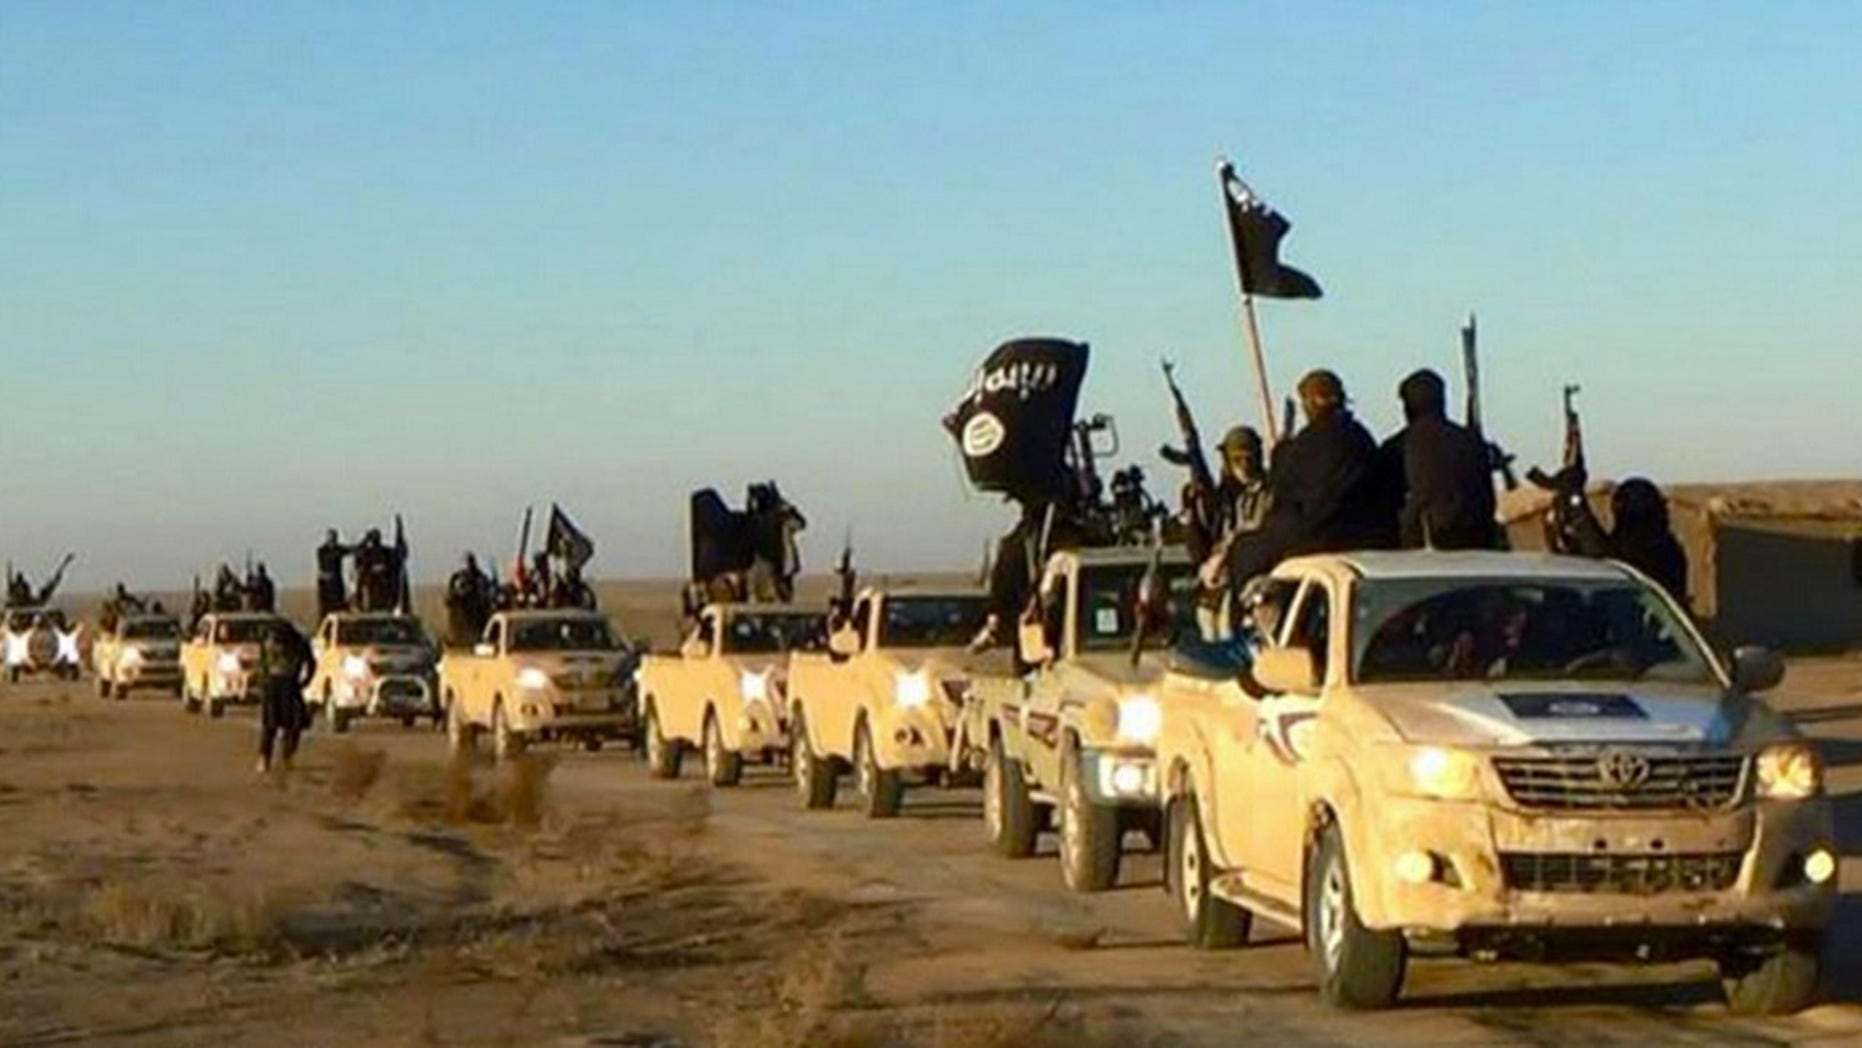 Syrian ISIS militants on a road leading to Iraq in 2014.